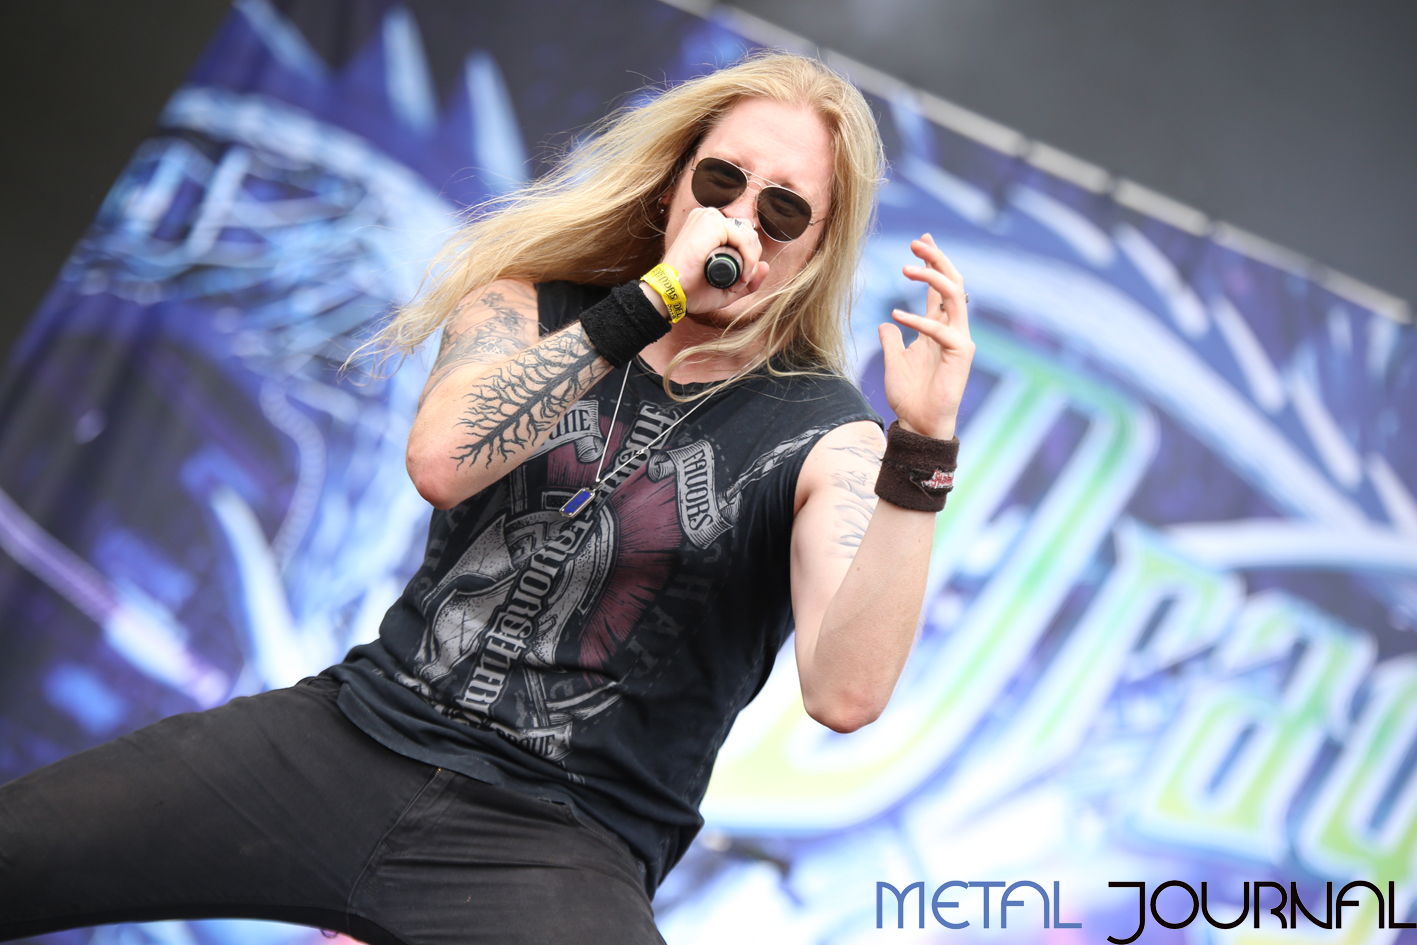 dragonforce - leyendas del rock 2018 pic 4